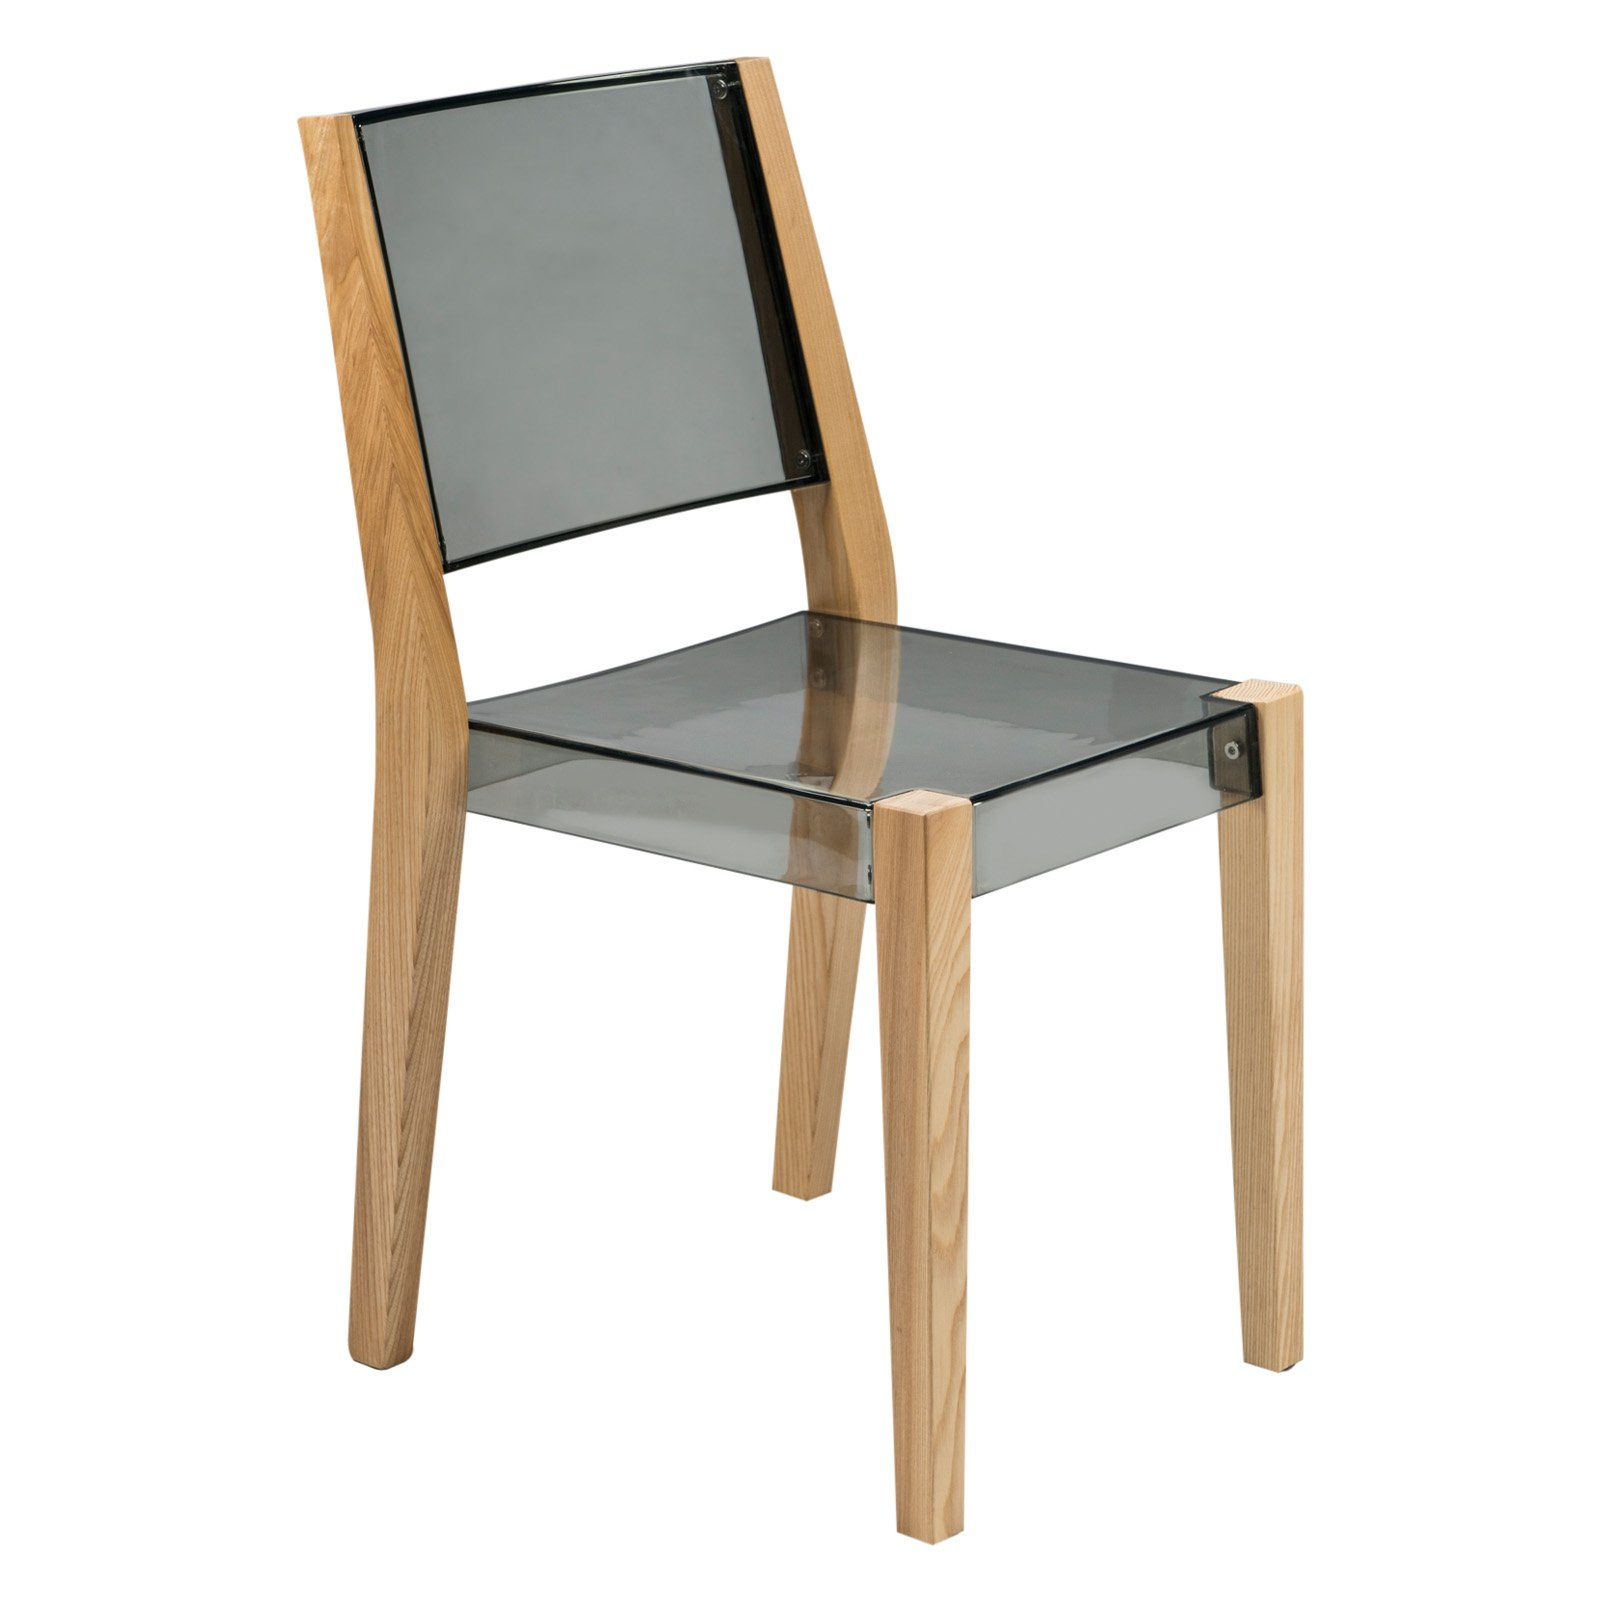 Leisuremod Barker Modern Chair With Wooden Frame Dining Chairs